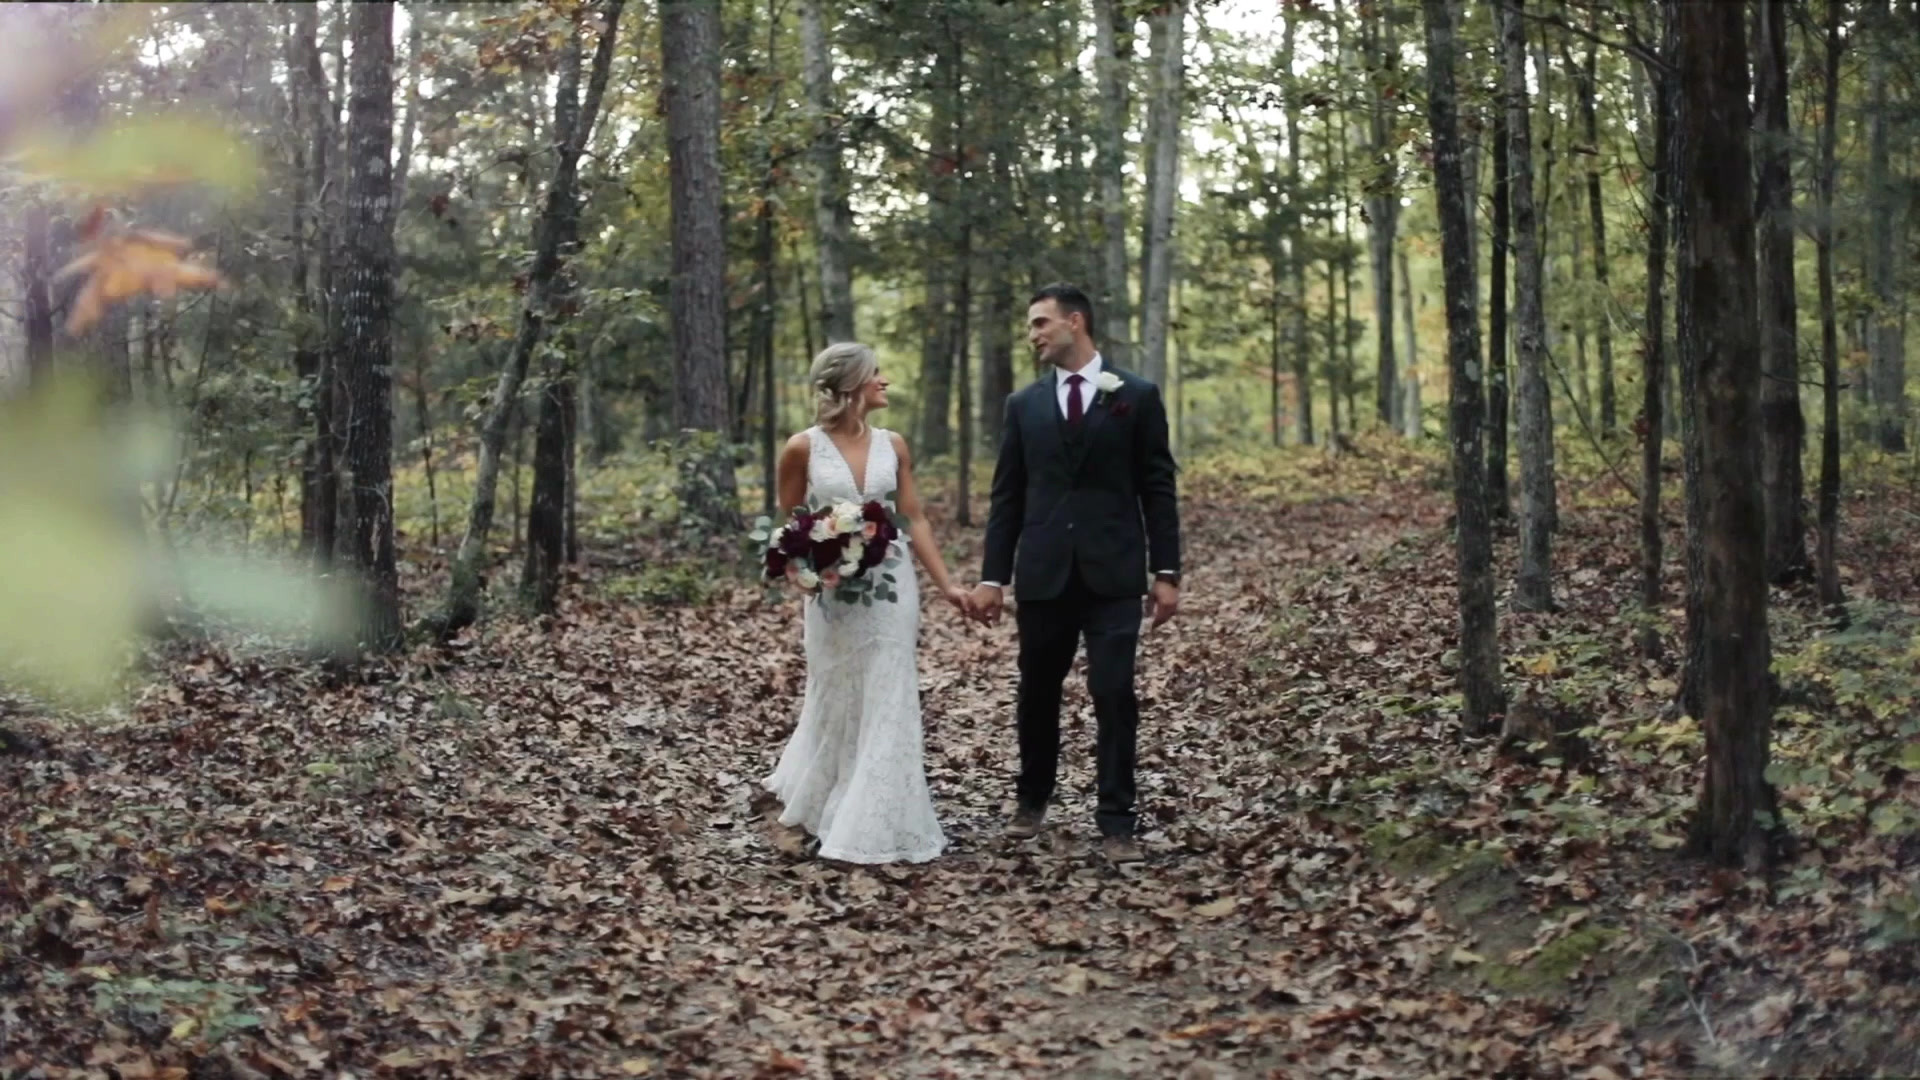 M + P Weddings and films